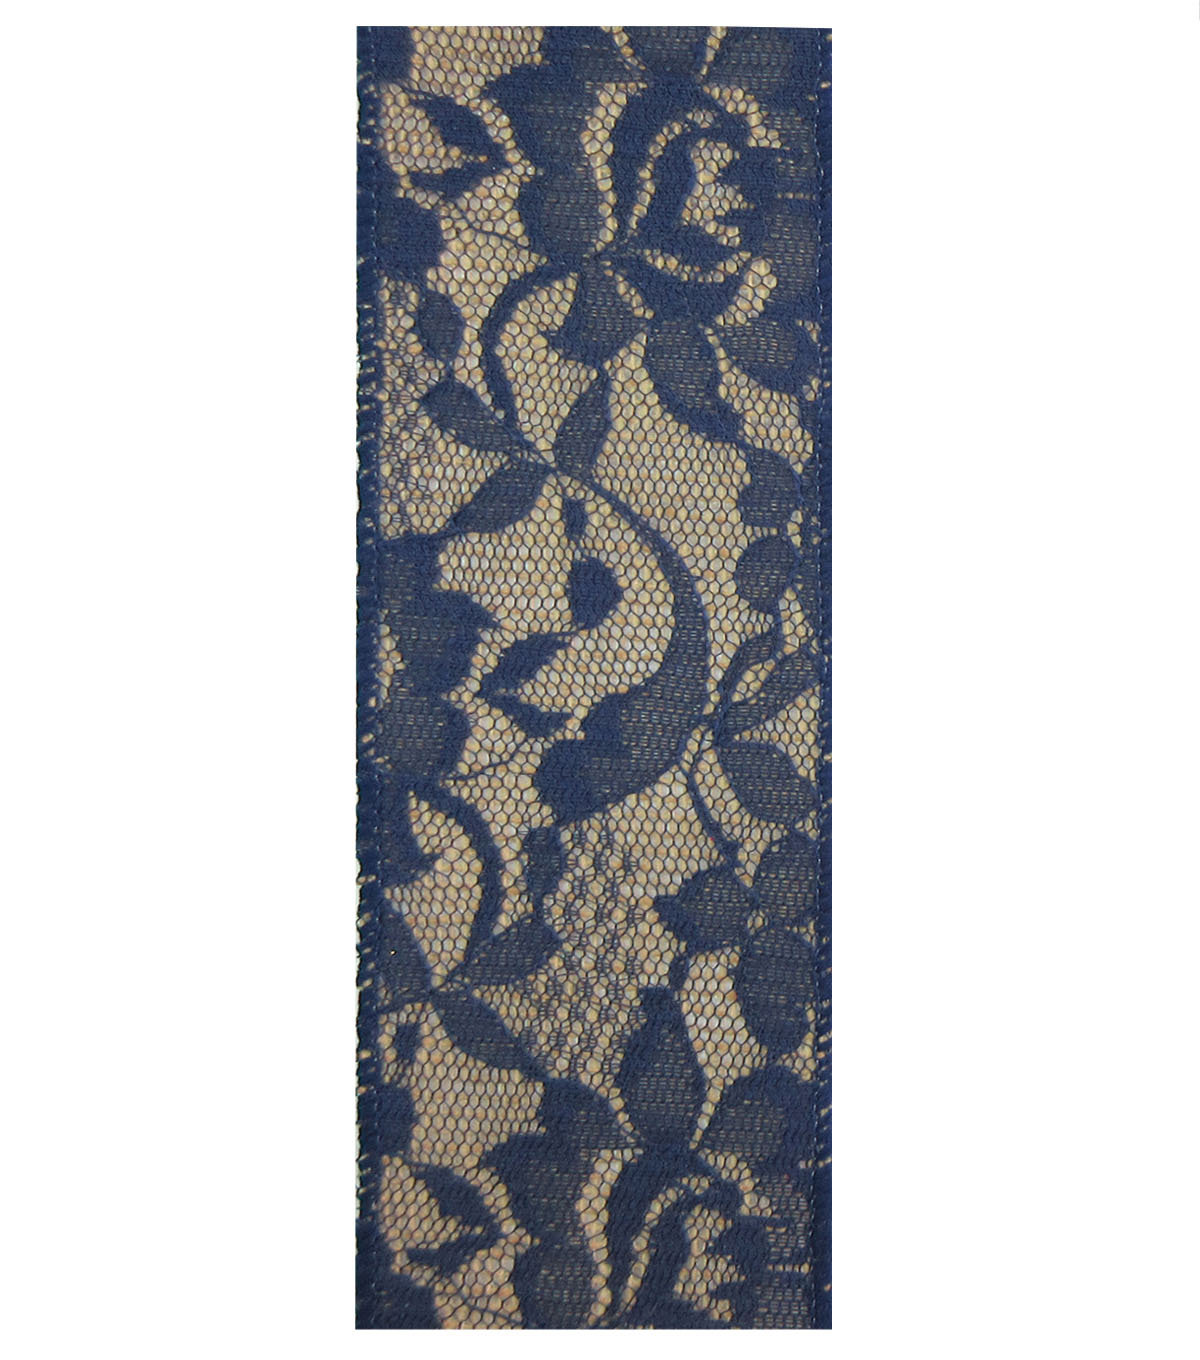 Decorative Ribbon Lace with Burlap 2.5\u0027\u0027x9\u0027-Navy